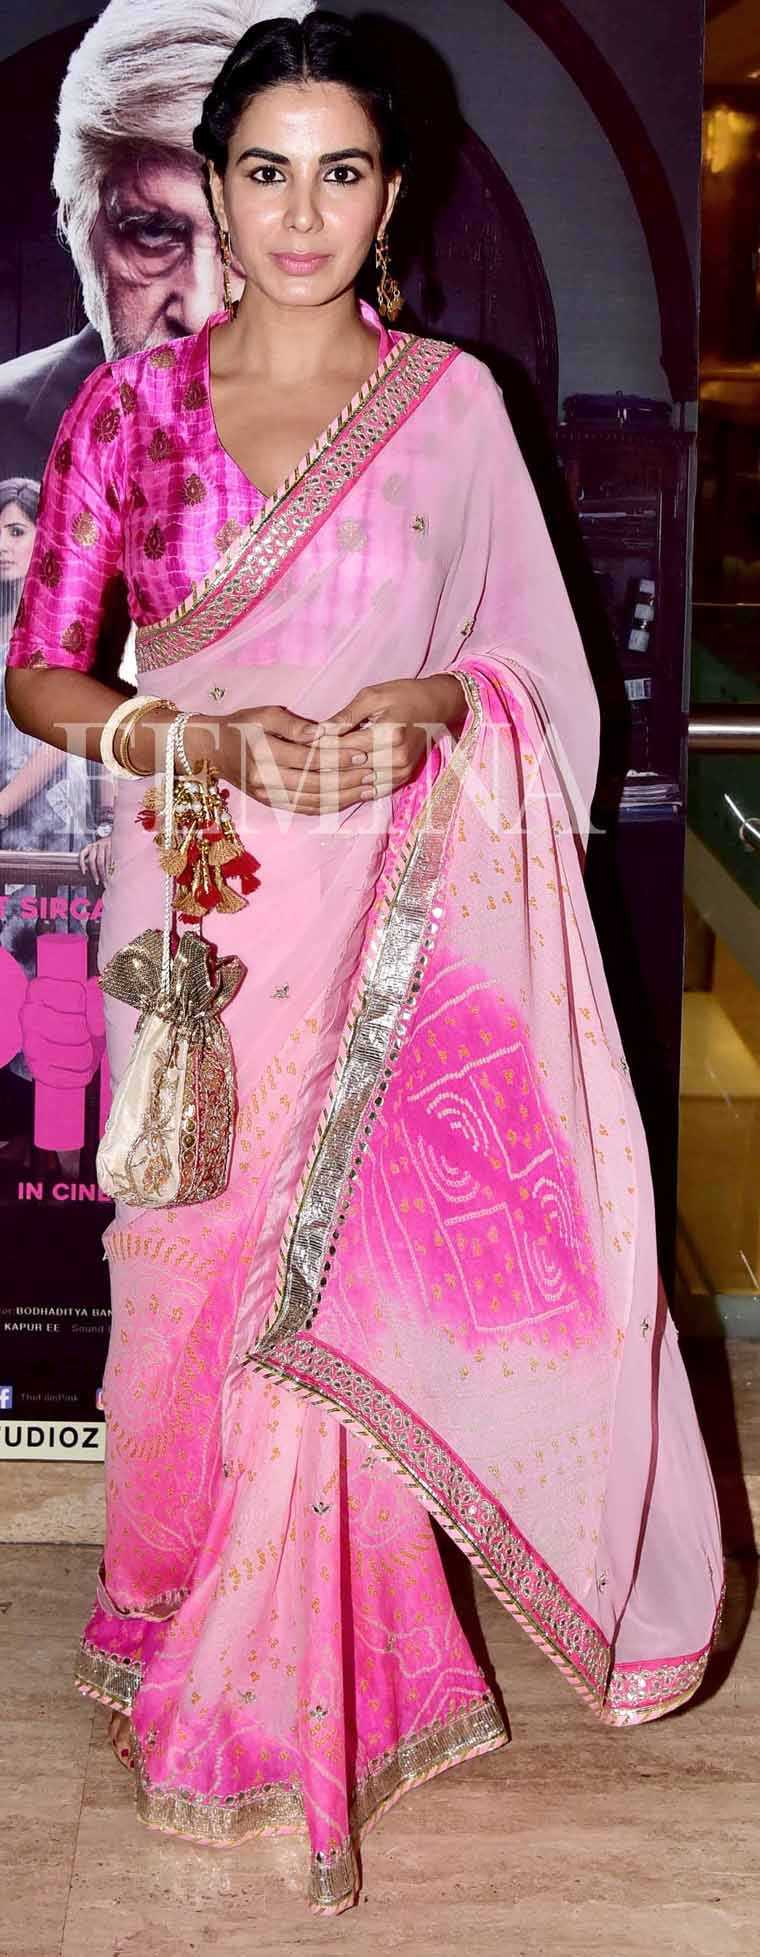 Kirti Kulhari pairs her georgette ombré sari with an embellished hot pink blouse.